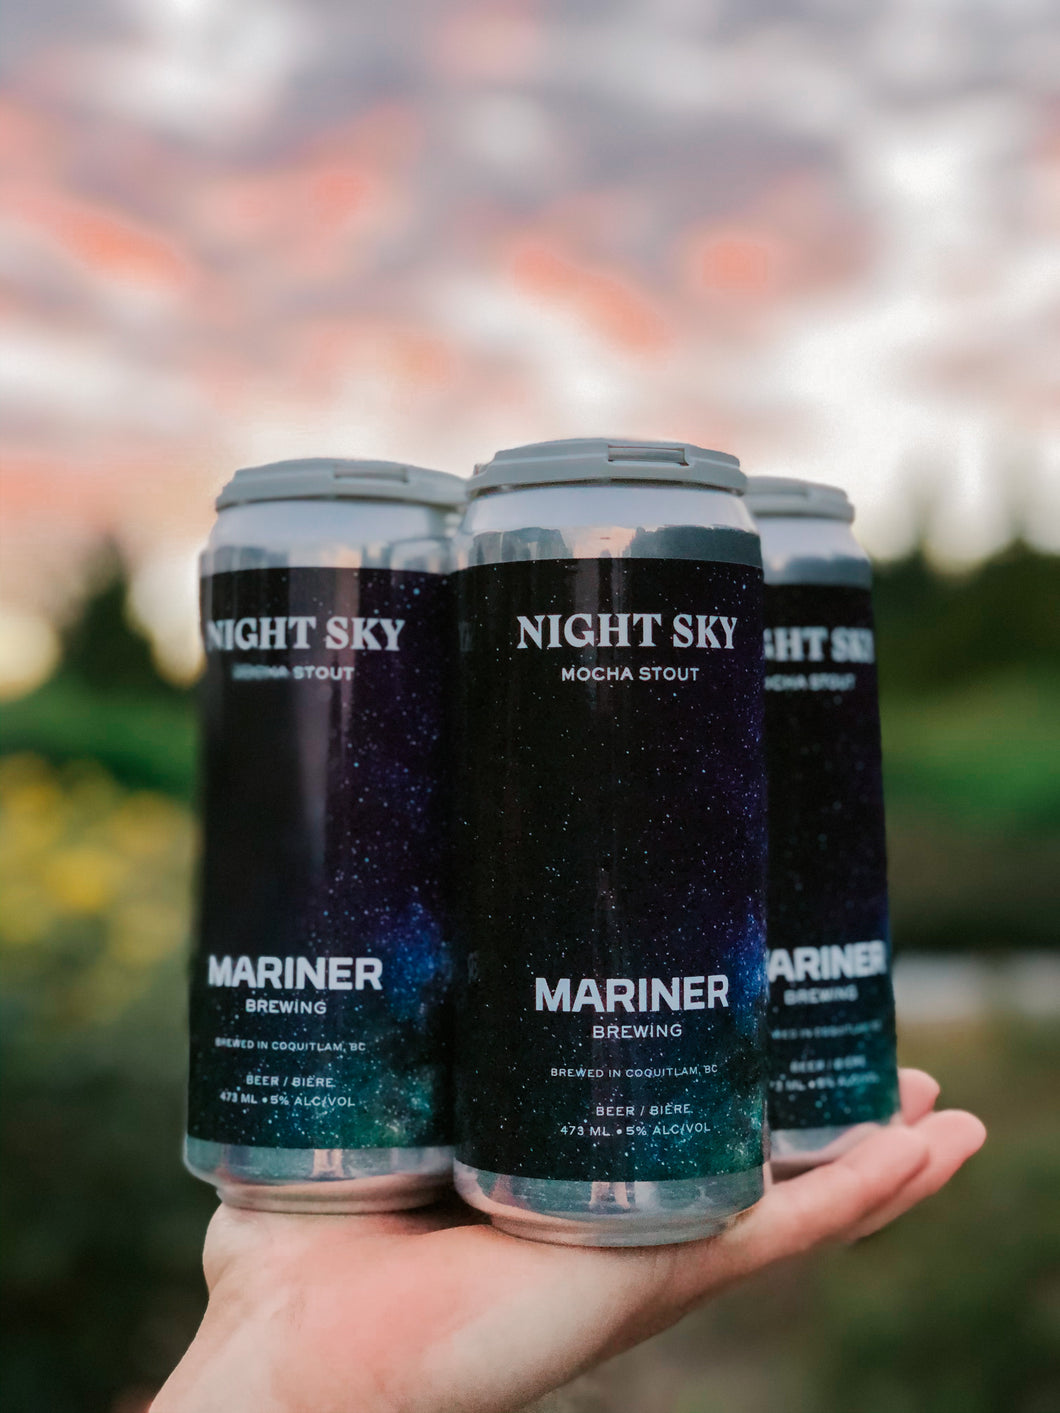 Night Sky Mocha Stout